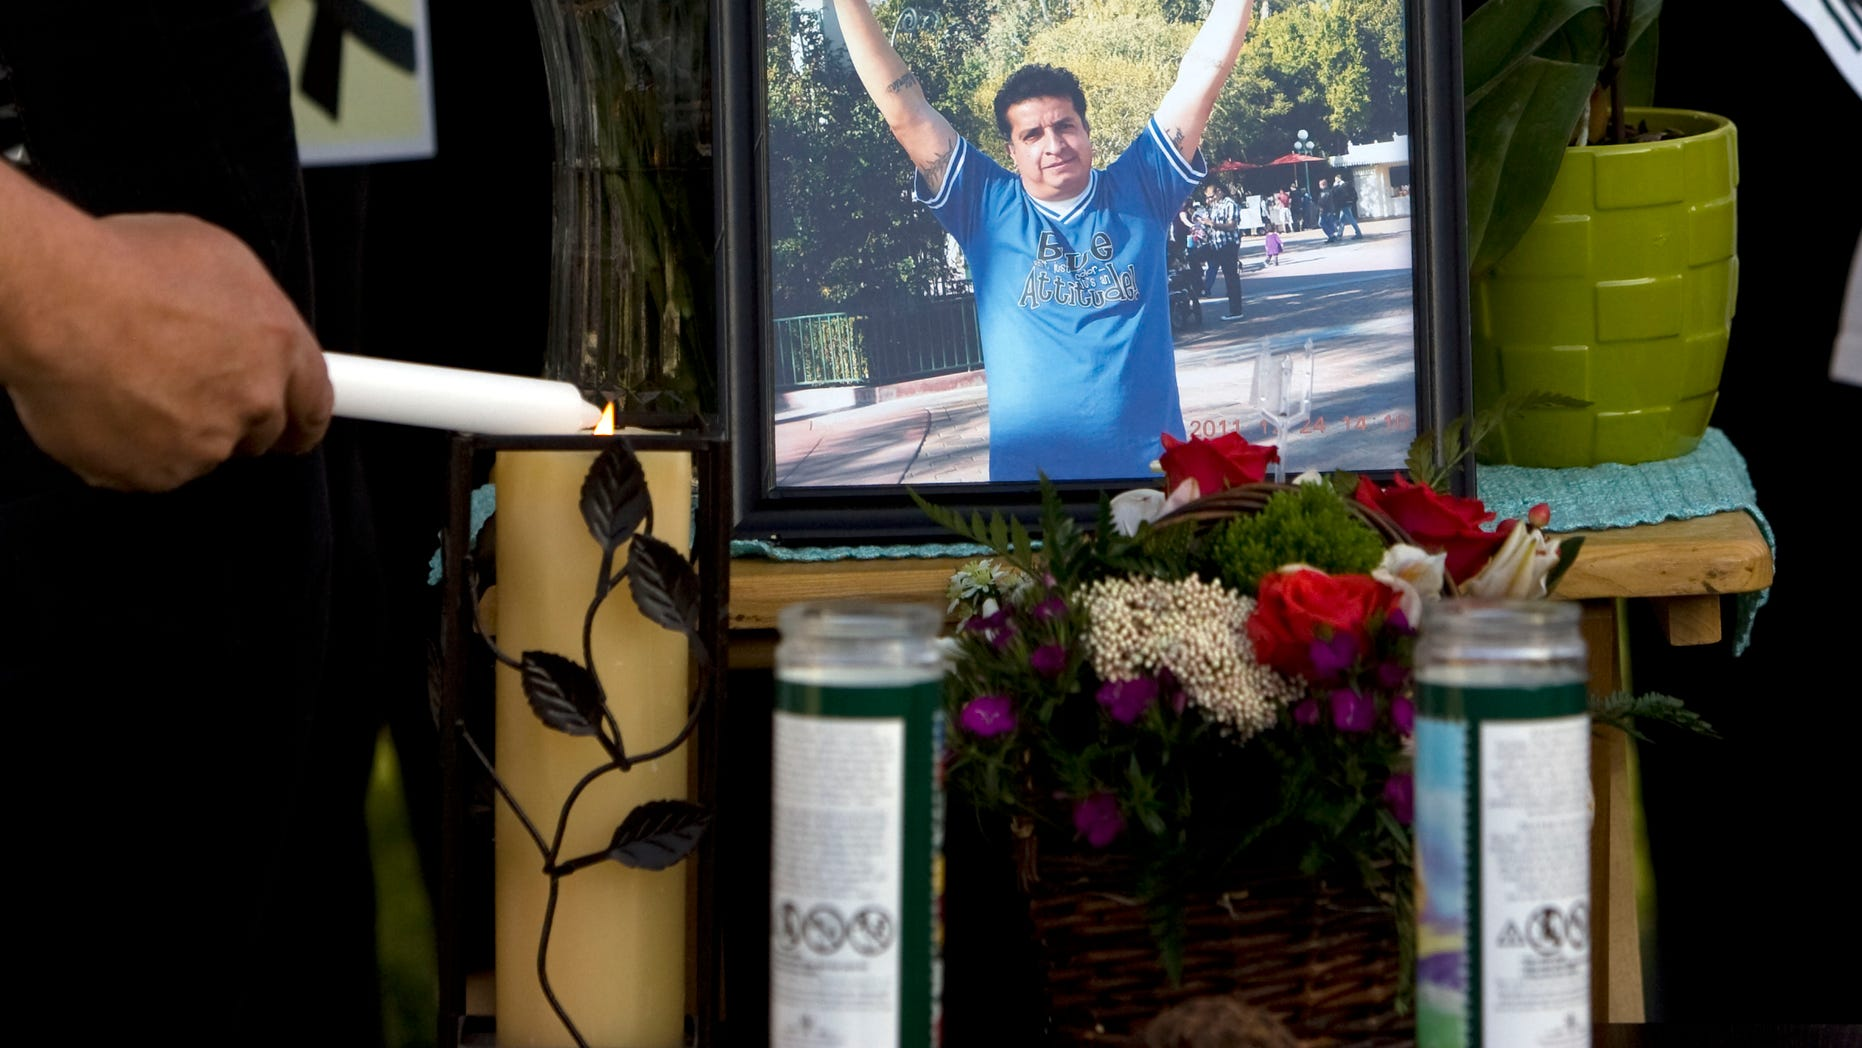 May 5, 2013: A mourner light candles at a makeshift memorial before a news conference by the family to discuss the death of Ricardo Portillo, who passed away after injuries he sustained after an assault by a soccer player at a soccer game he was refereeing on April 27, in Salt Lake City.